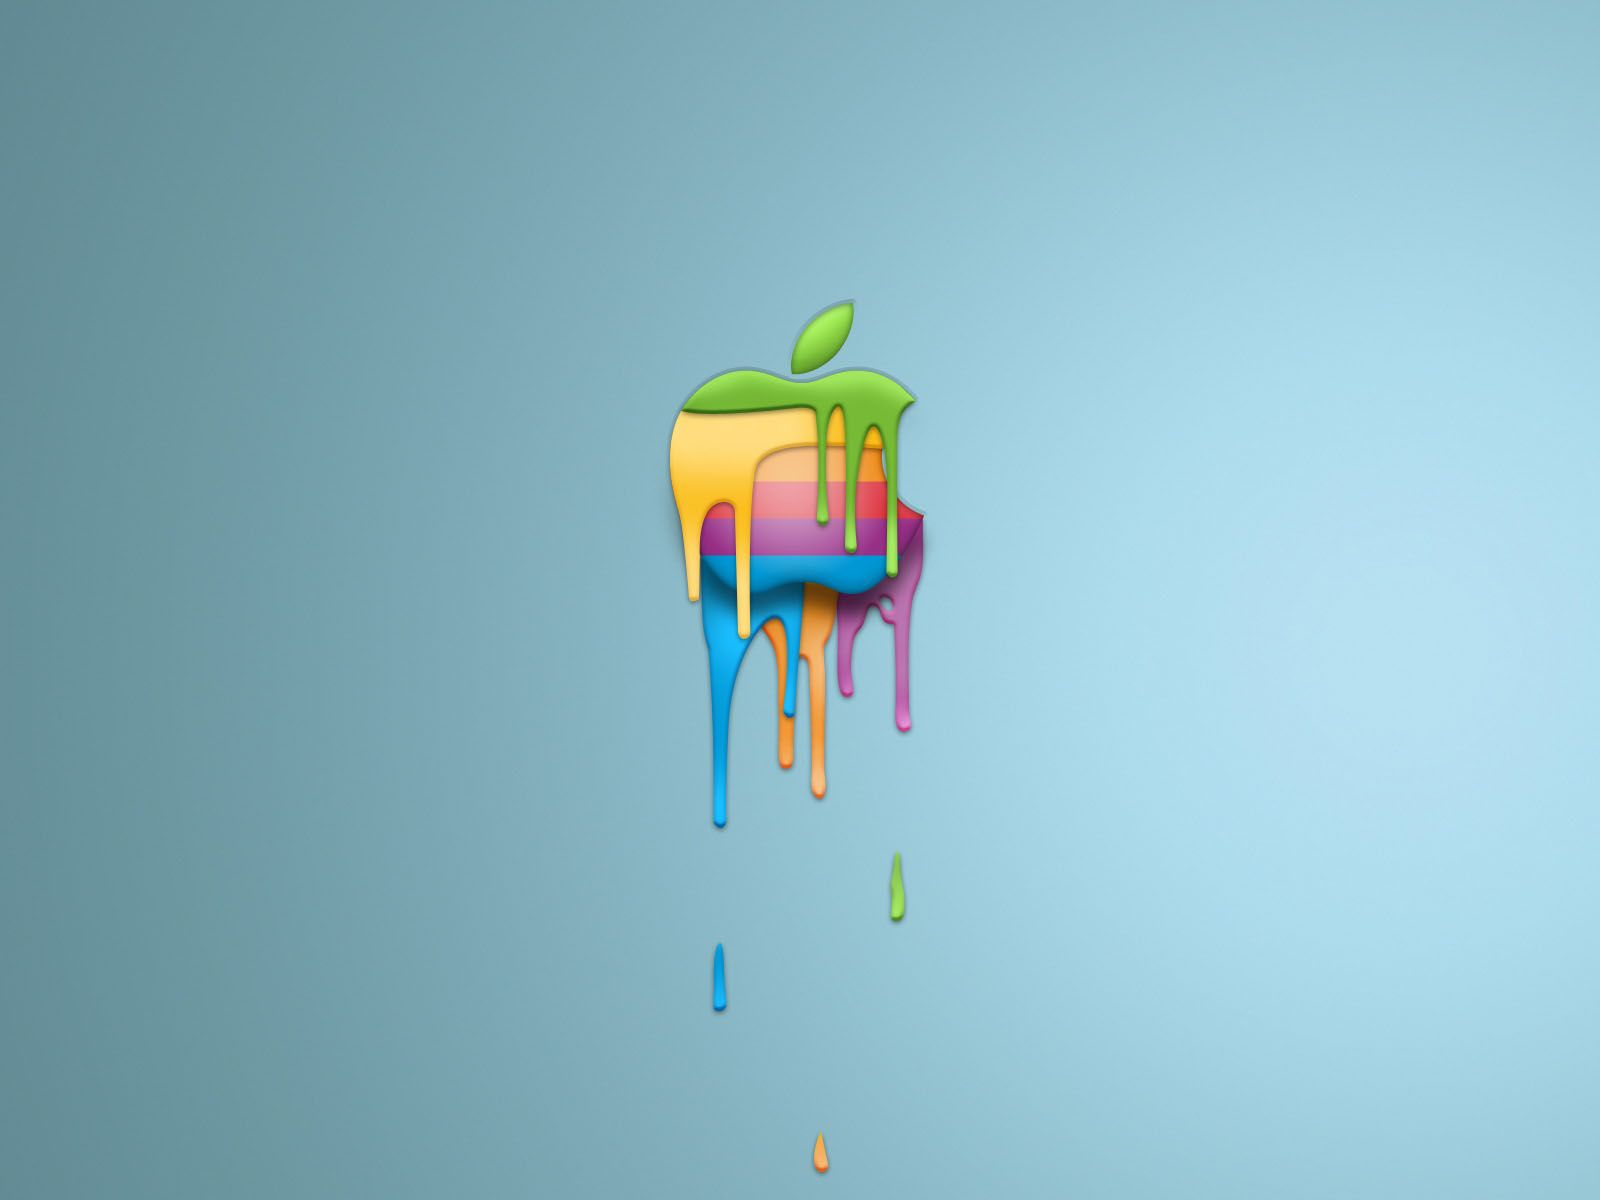 macintosh wallpapers 1600a—1200 mac desktop backgrounds free 34 wallpapers adorable wallpapers